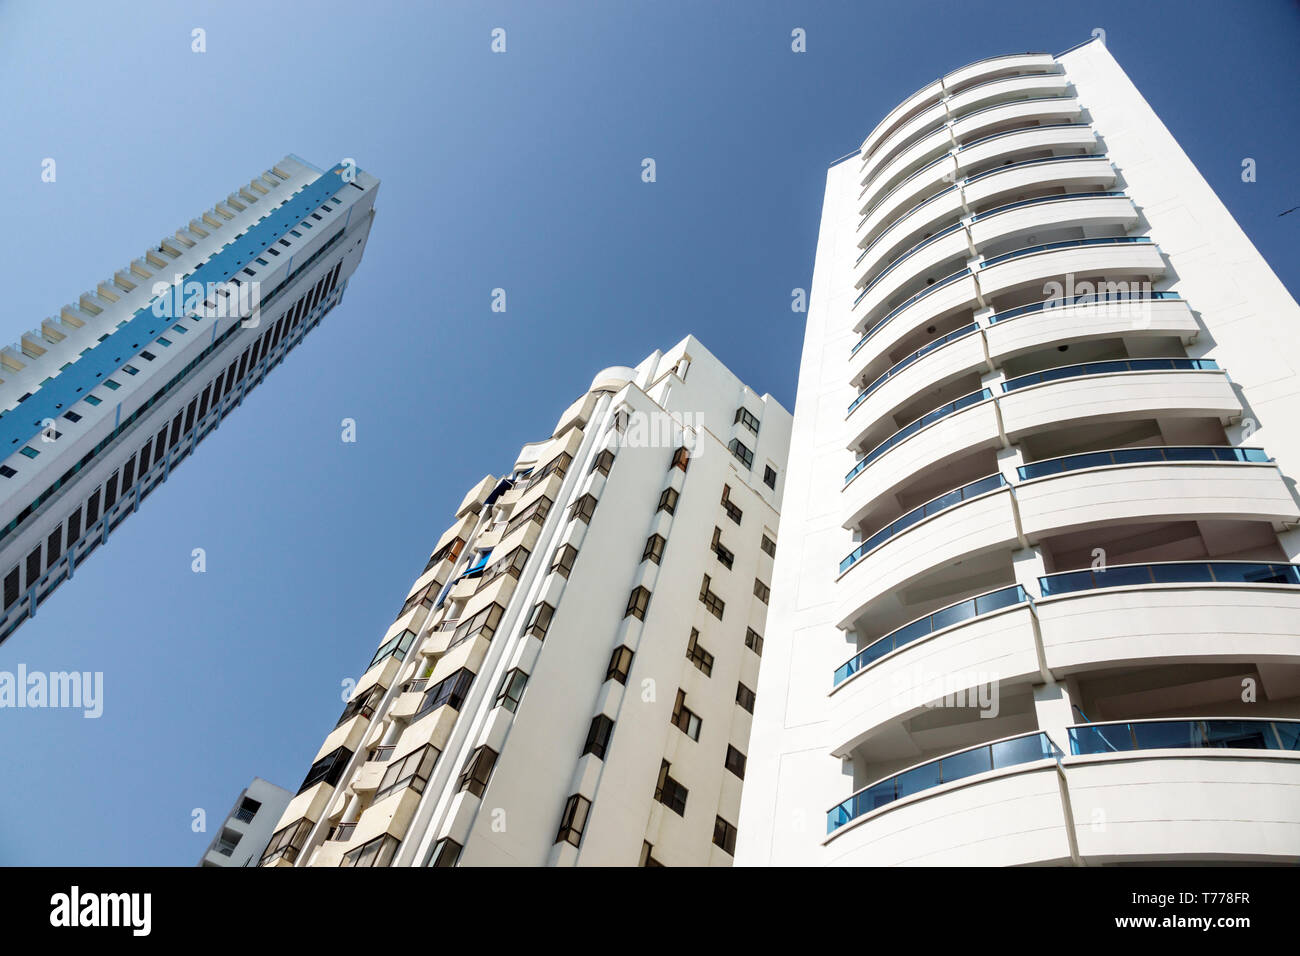 Cartagena Colombia El Laguito tall buildings high rise residential apartments balconies vertical height - Stock Image